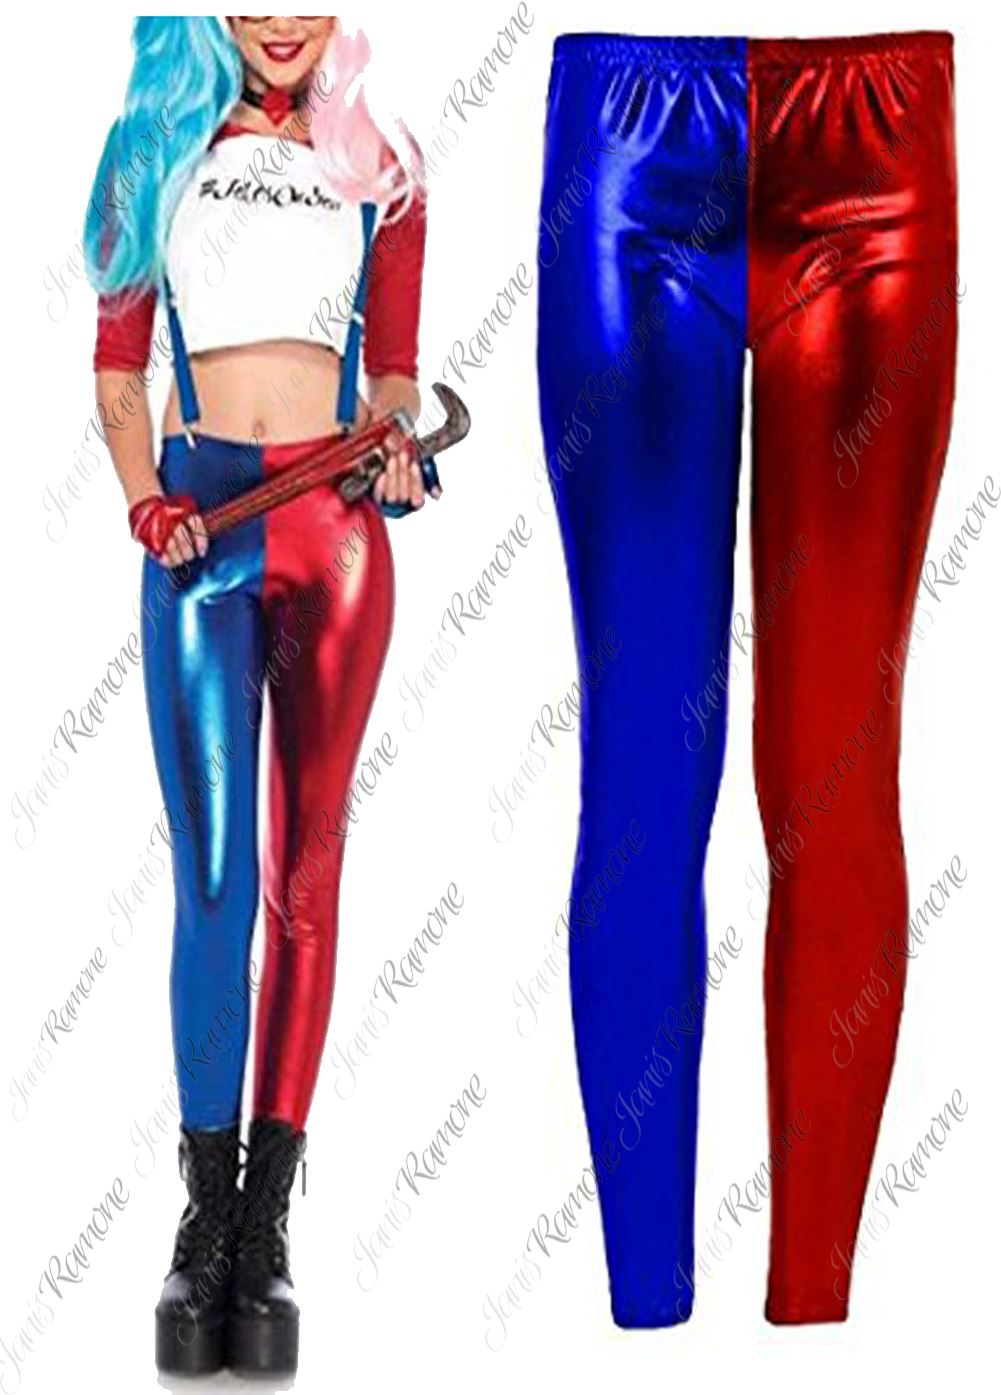 855a67f8014a3 Details about New Womens Red Blue Costume Suicide Squad Metallic Shiny Look Leggings  Pants